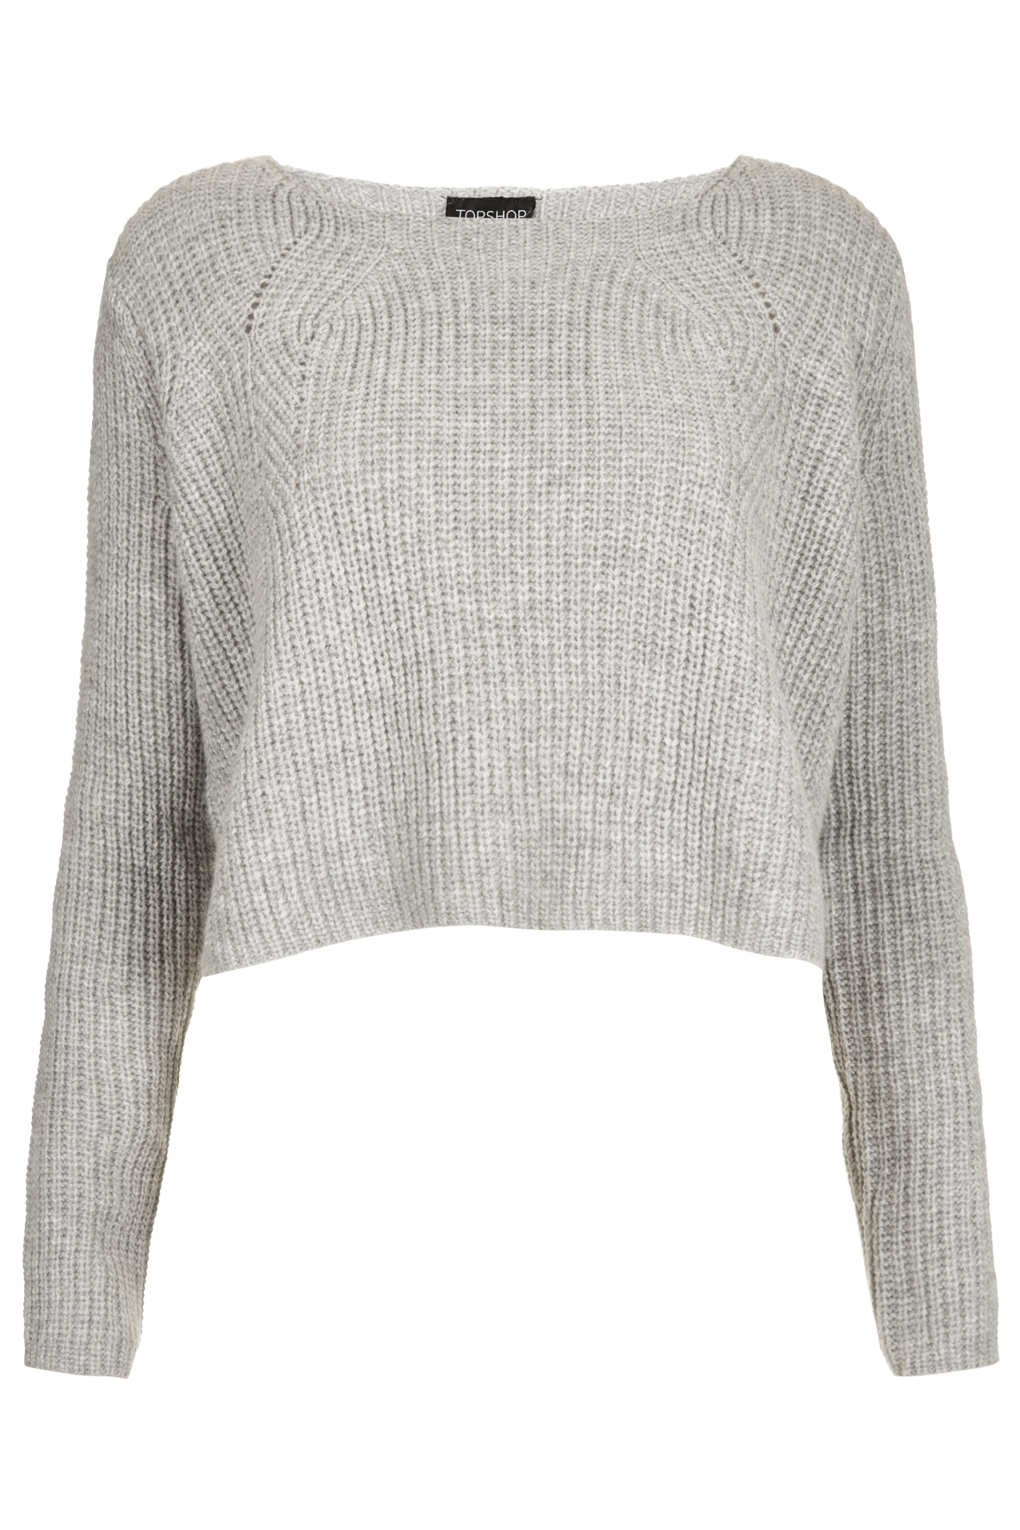 Knitting Pattern Cropped Jumper : Topshop Knitted Ribbed Crop Jumper in Gray Lyst